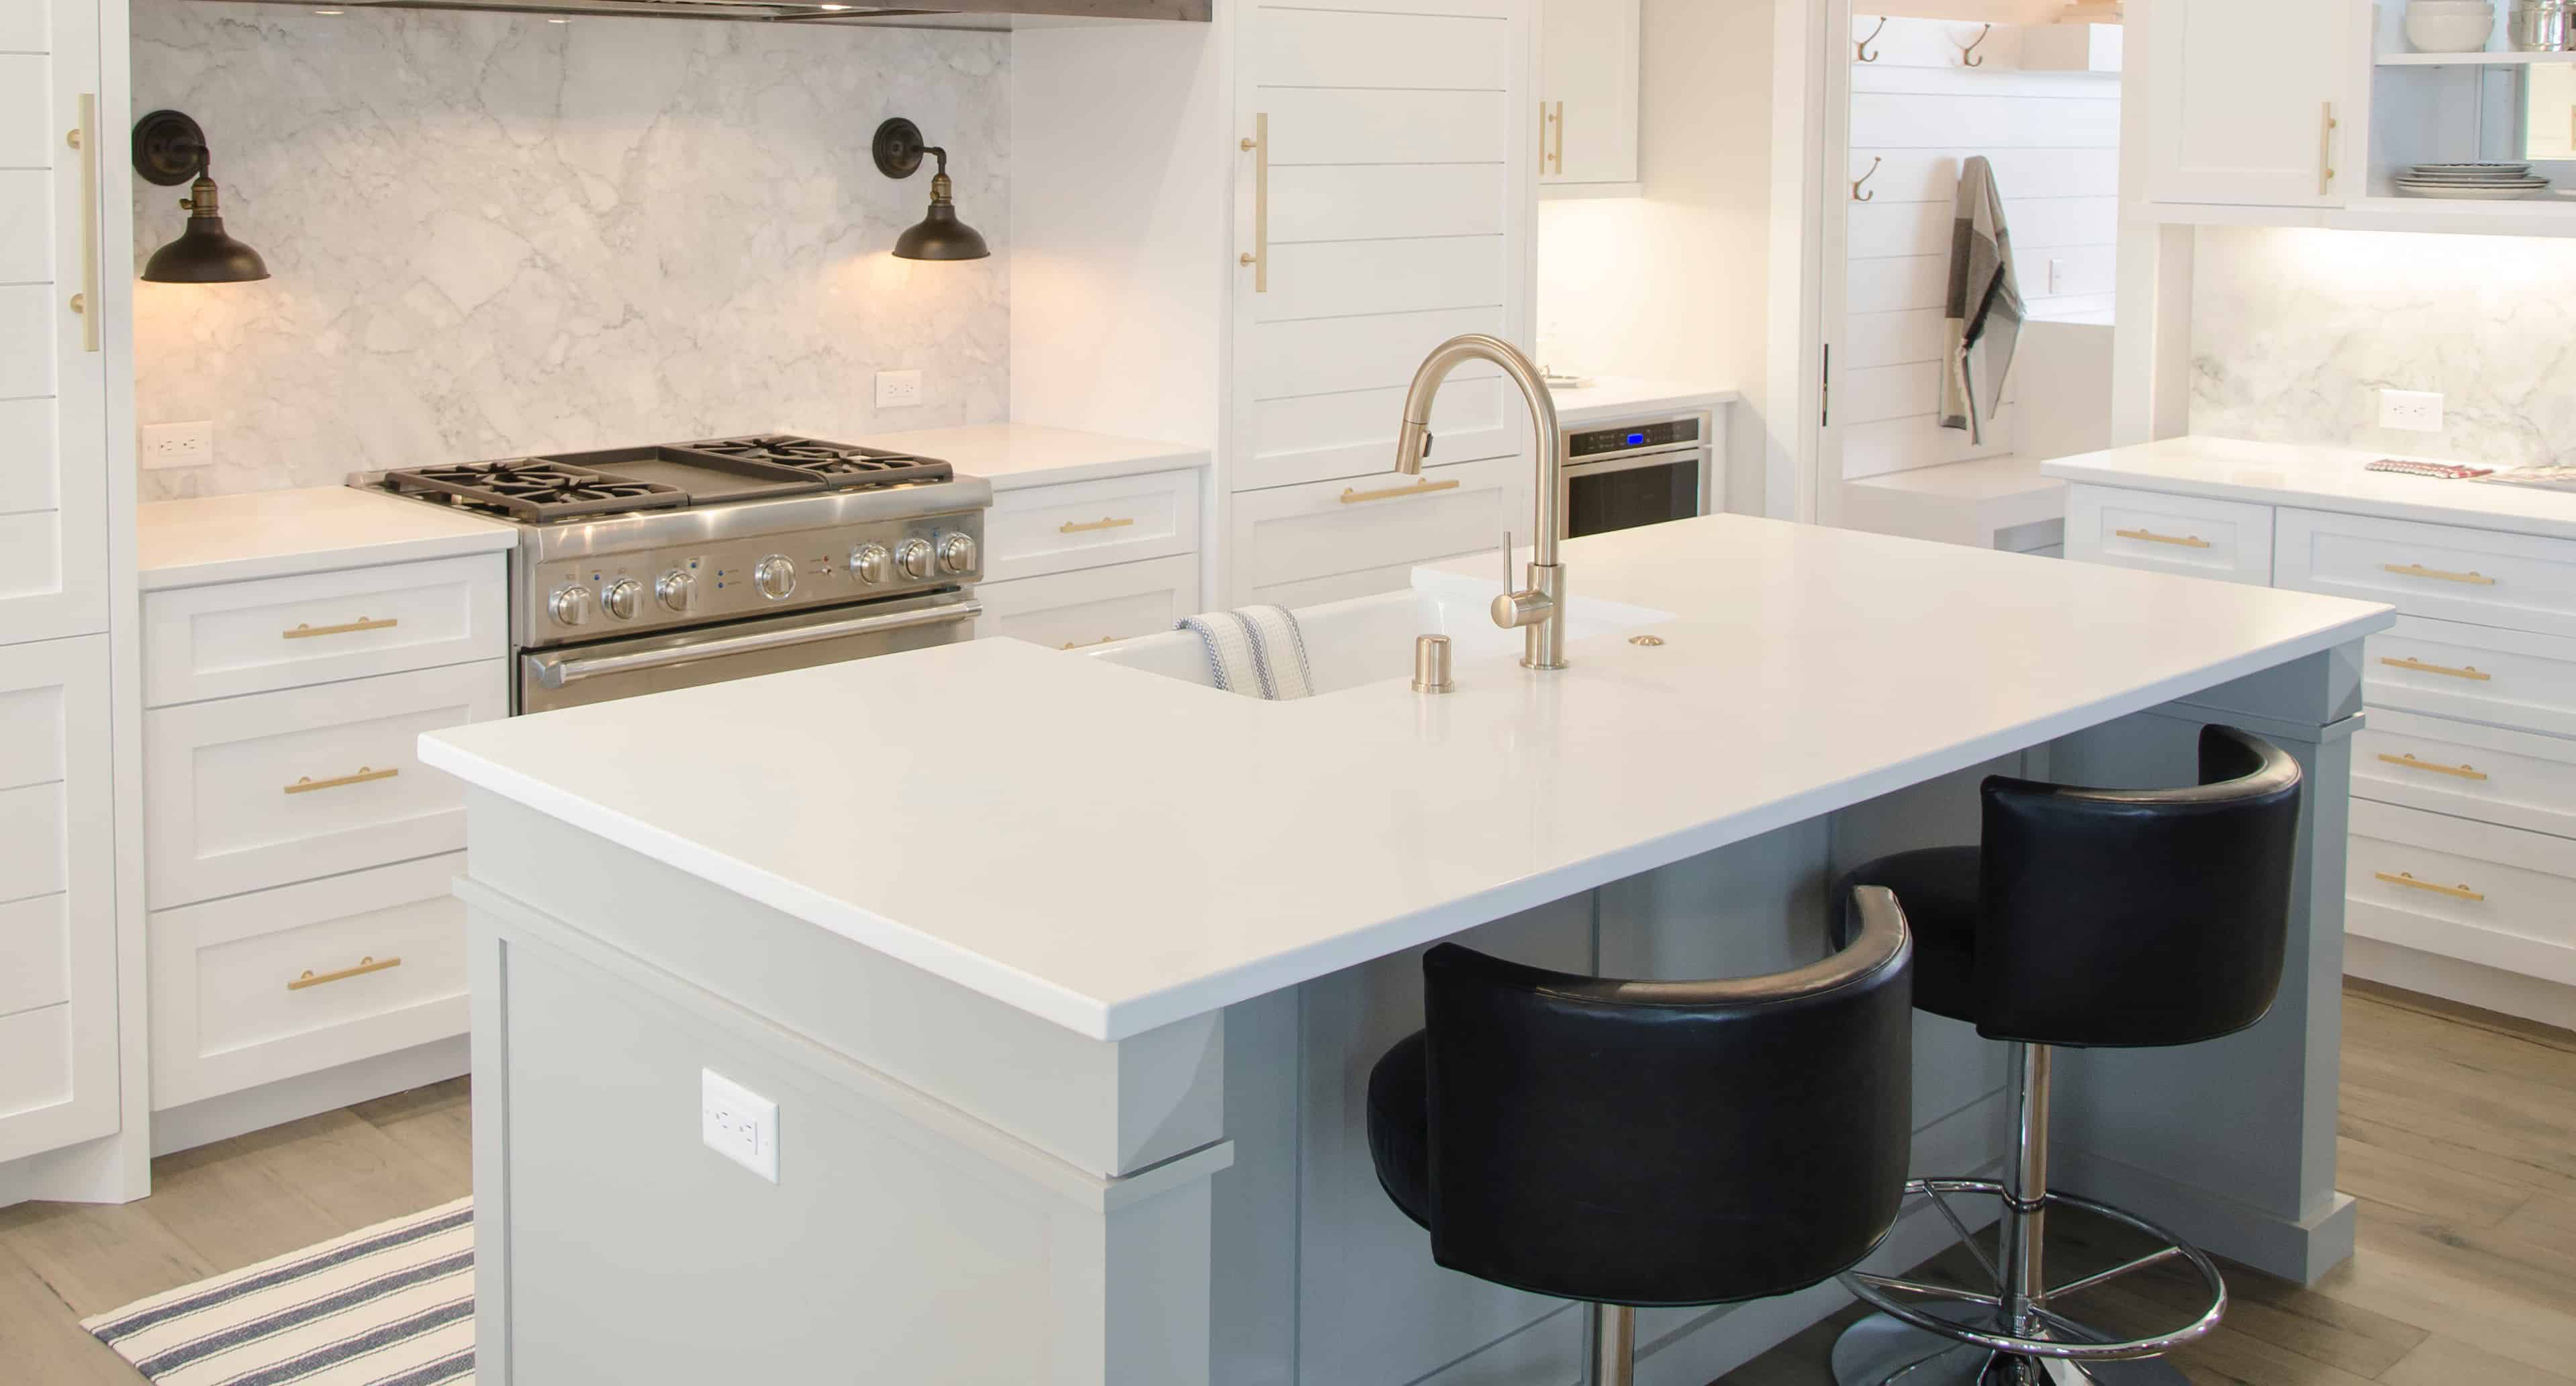 Image of Quartz Countertops